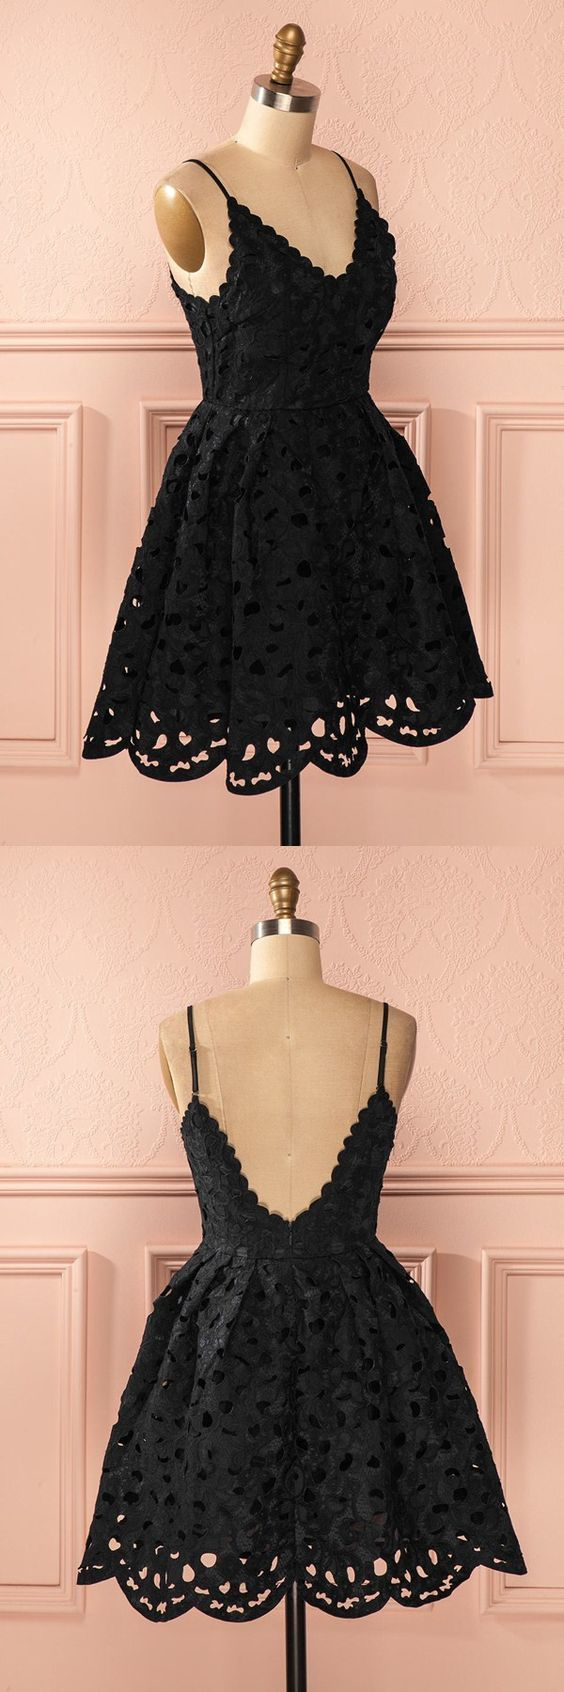 A-Line Spaghetti Straps Backless Short Black Lace Homecoming Dress